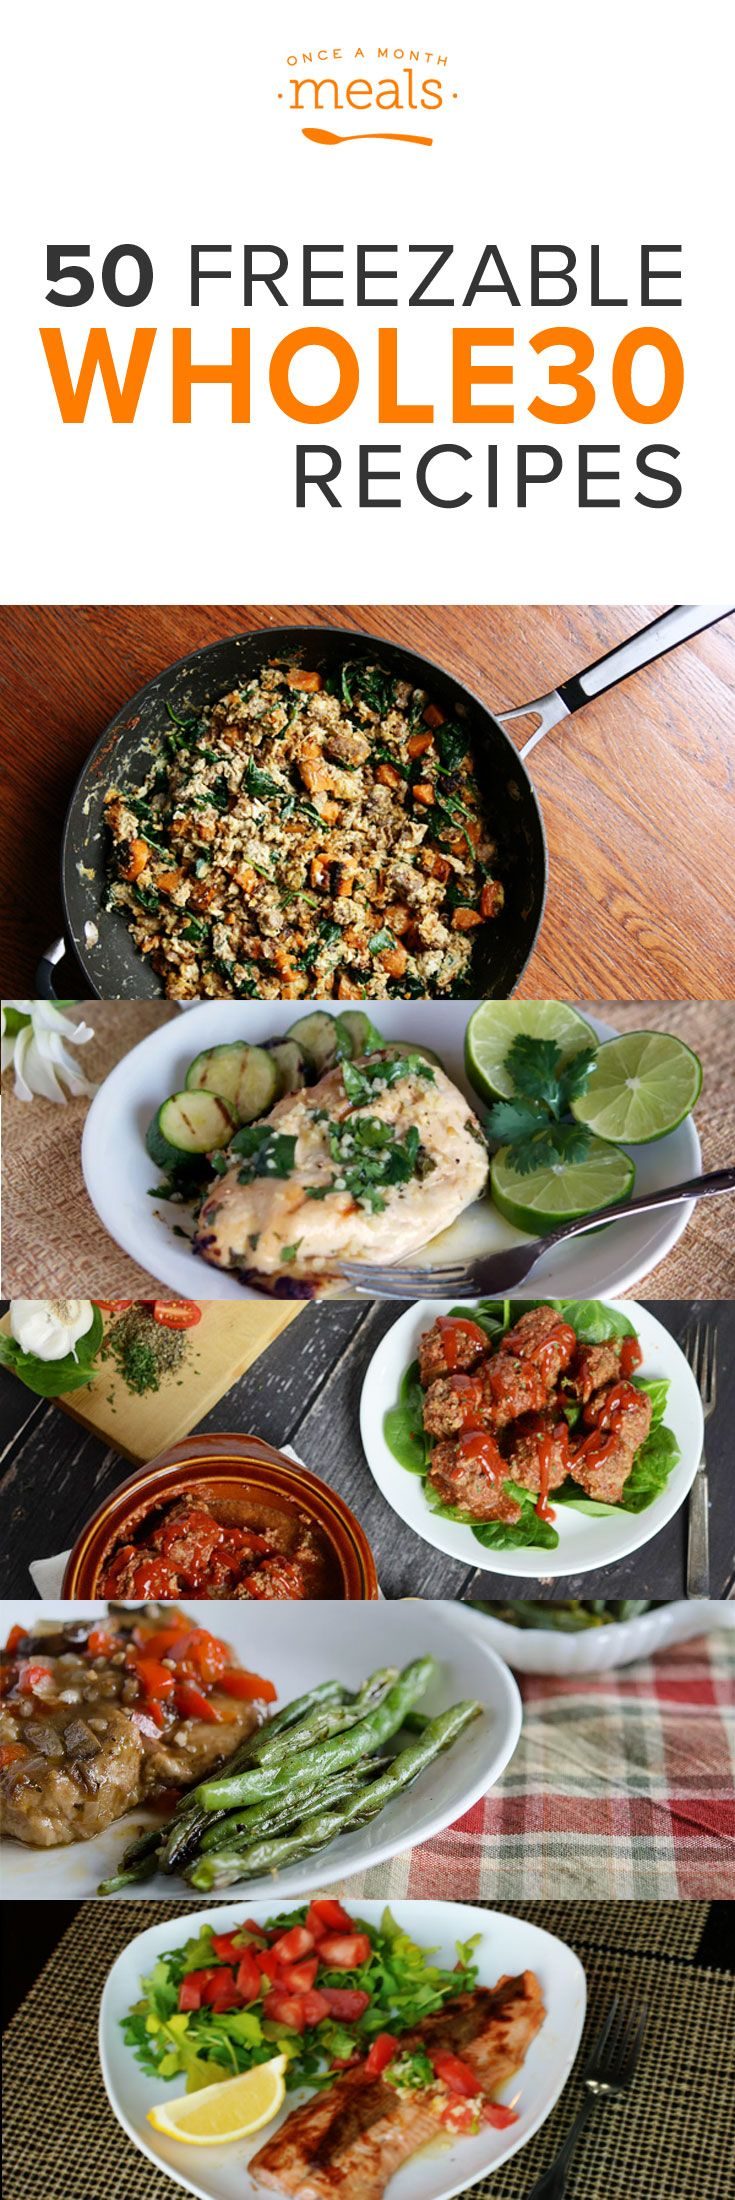 50+Freezable+Whole30+Recipes+via+@onceamonthmeals